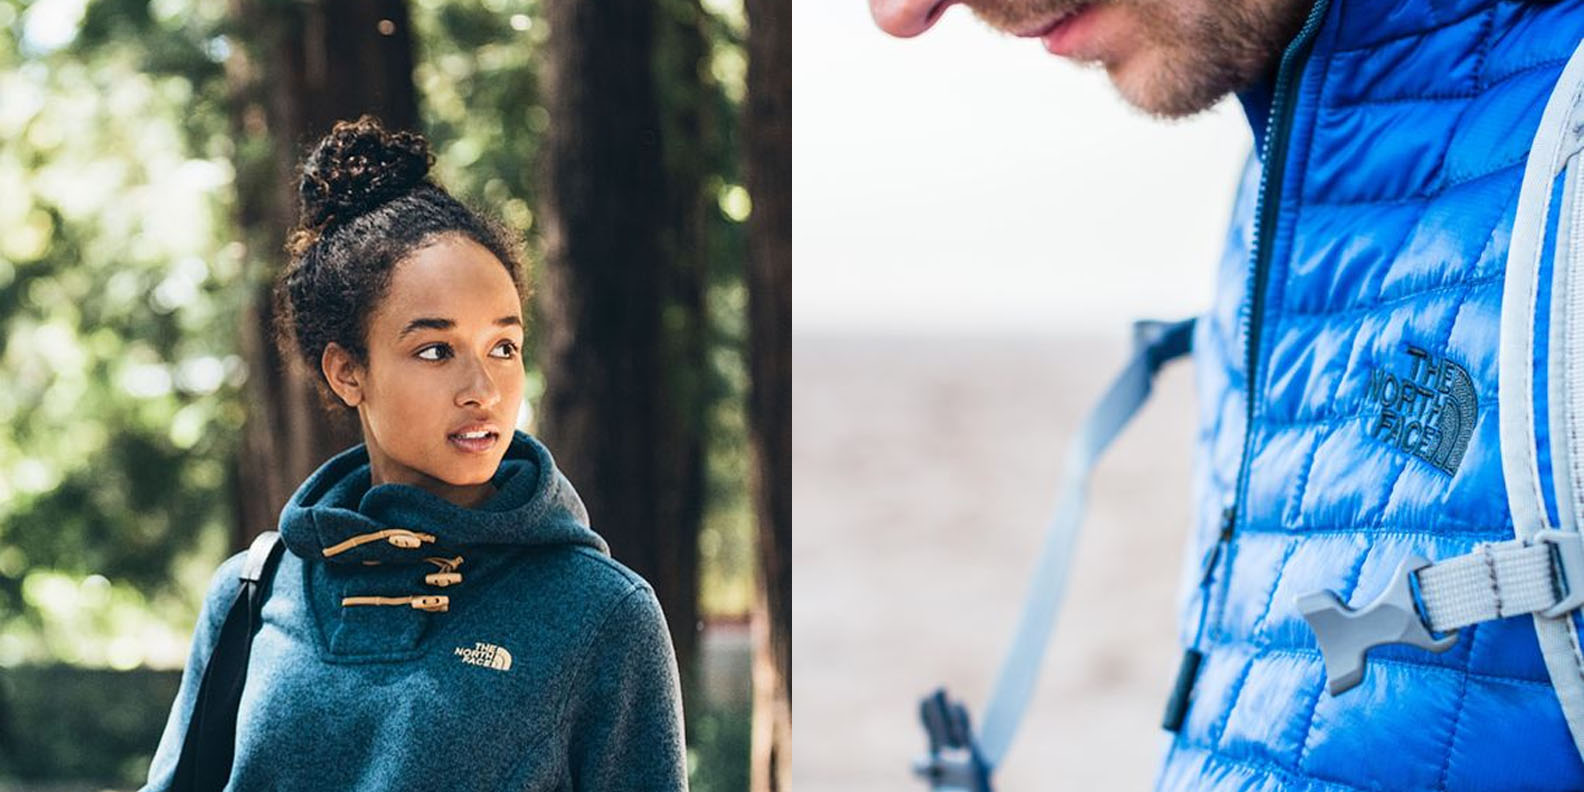 REI's End of Season Event offers up to 50% off The North Face, Marmot, more